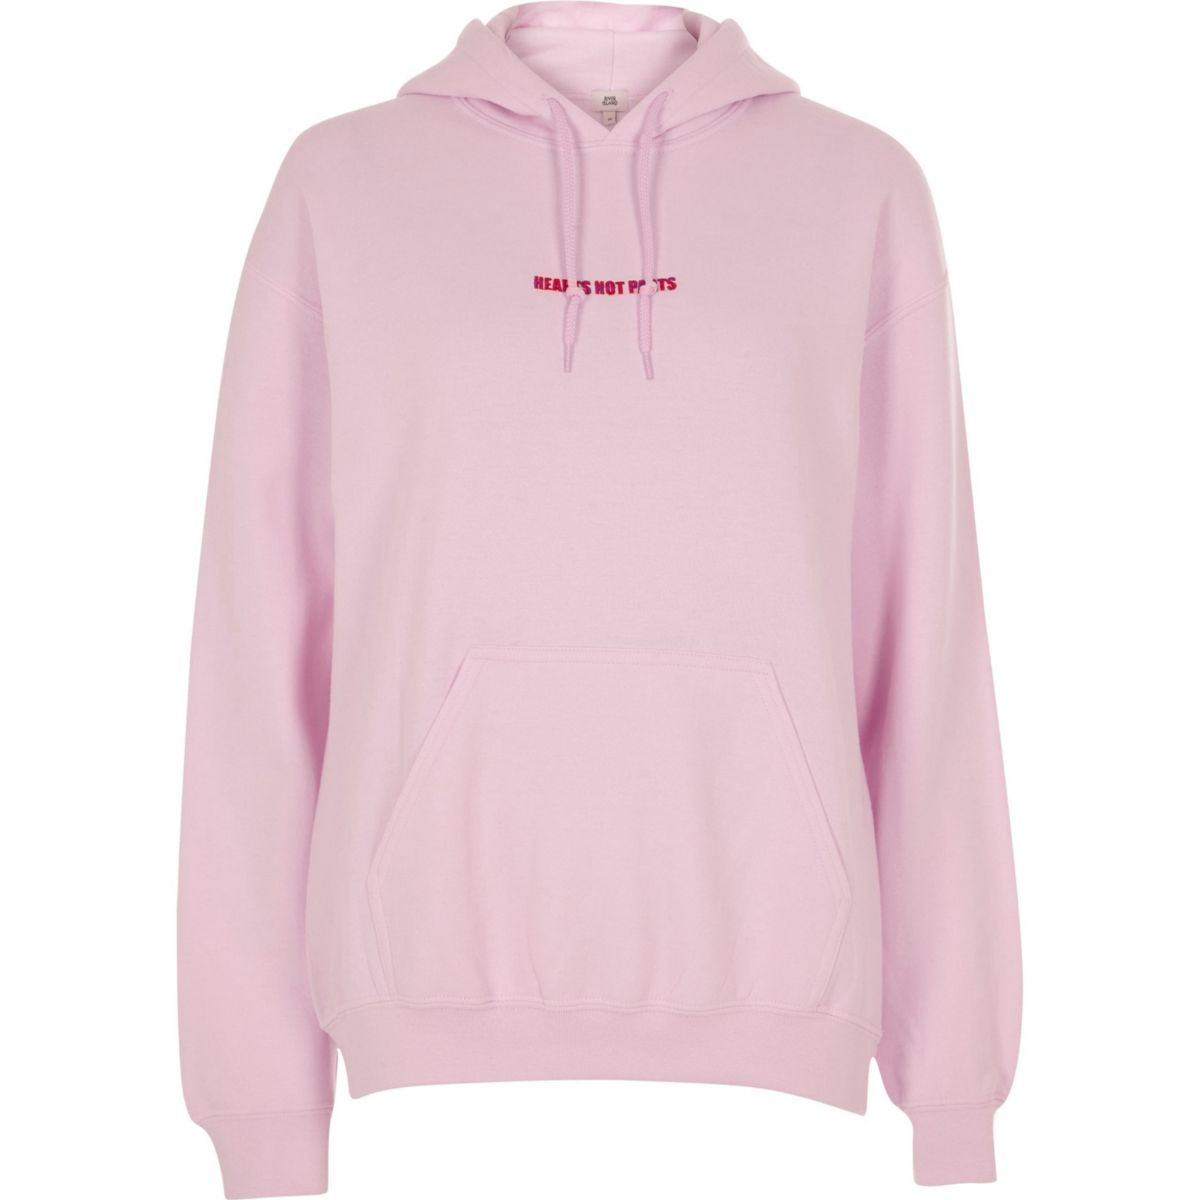 Pink Pride 'hearts not parts' print hoodie